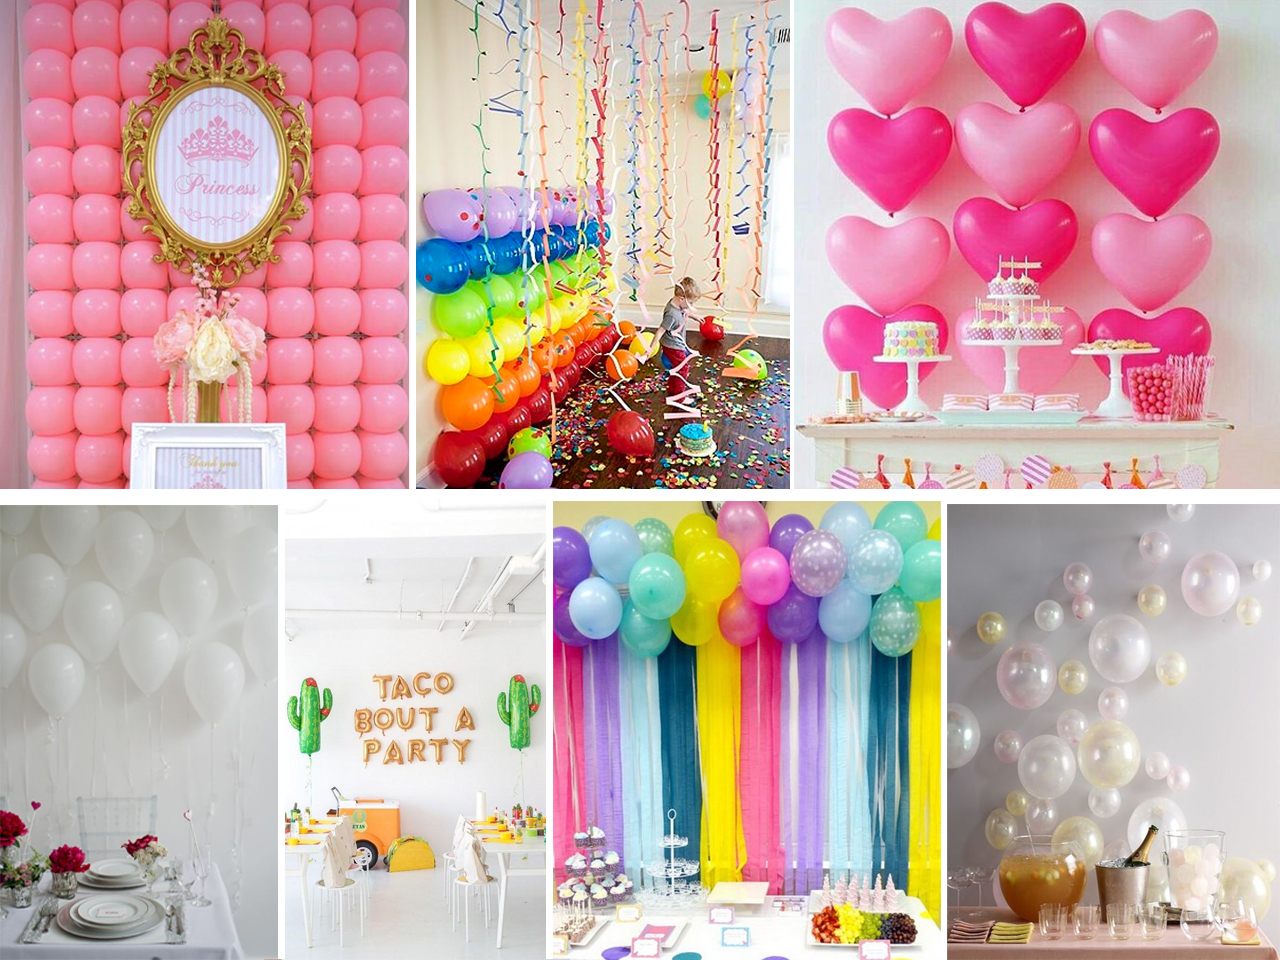 Descubre c mo decorar con globos con estas fant sticas ideas - Decoraciones de paredes ...